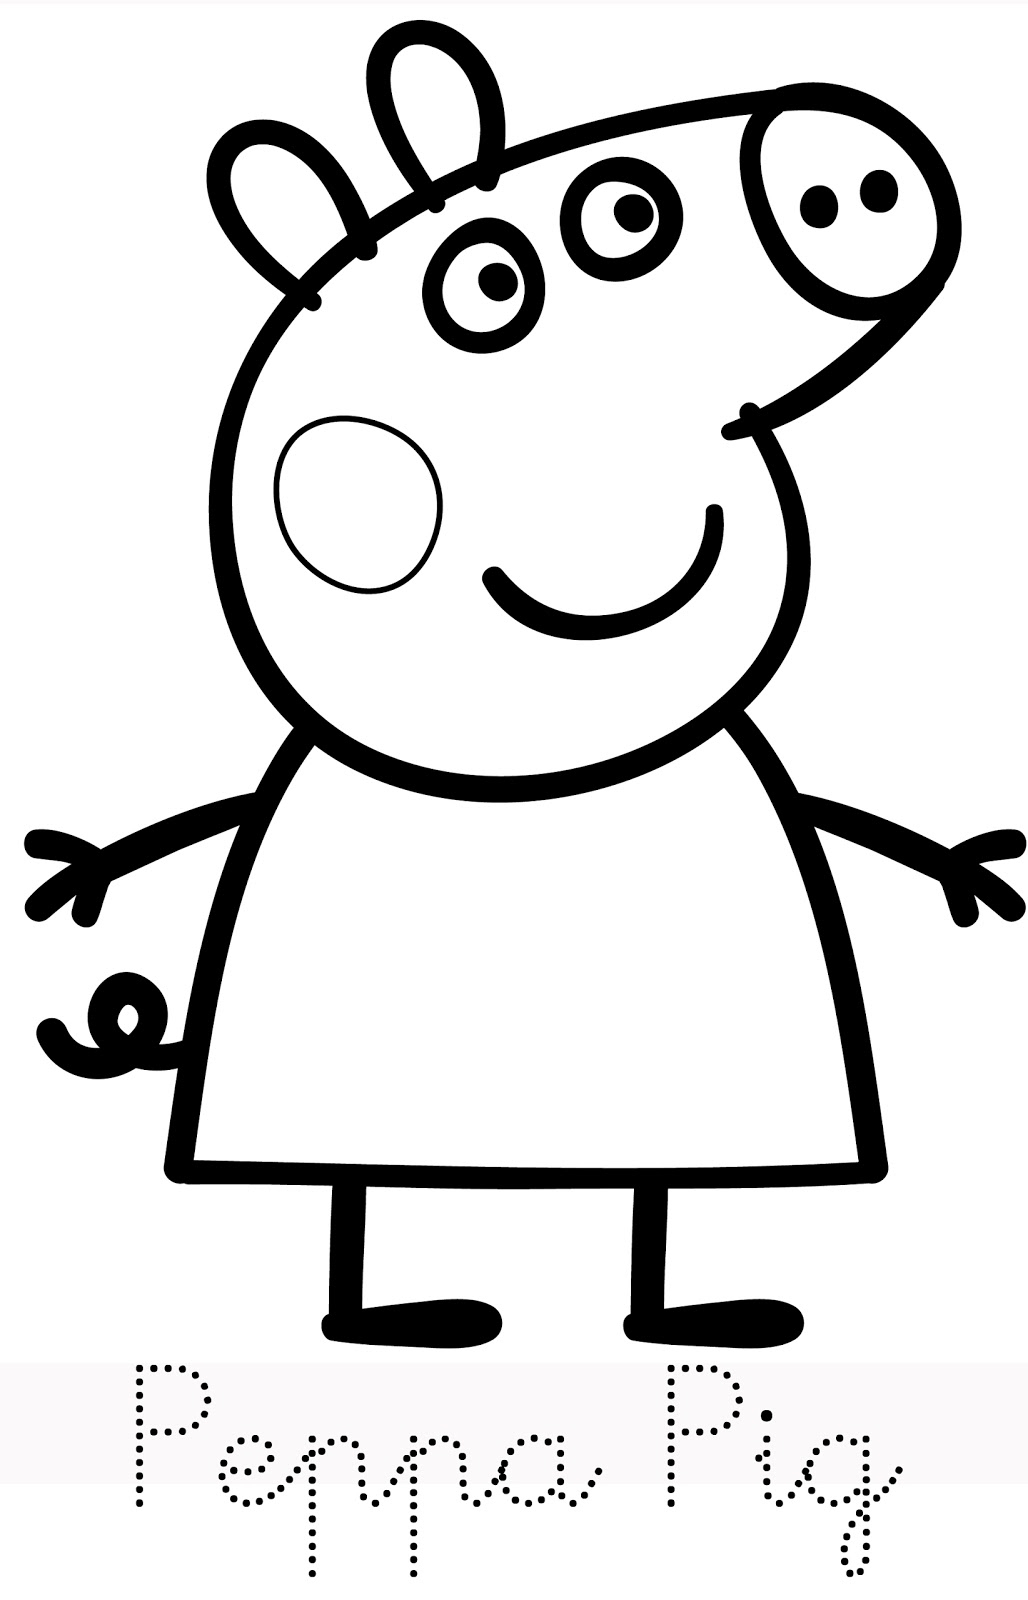 1028x1600 Peppa Pig Drawing Templates Peppa pig cake template Peppa Pig